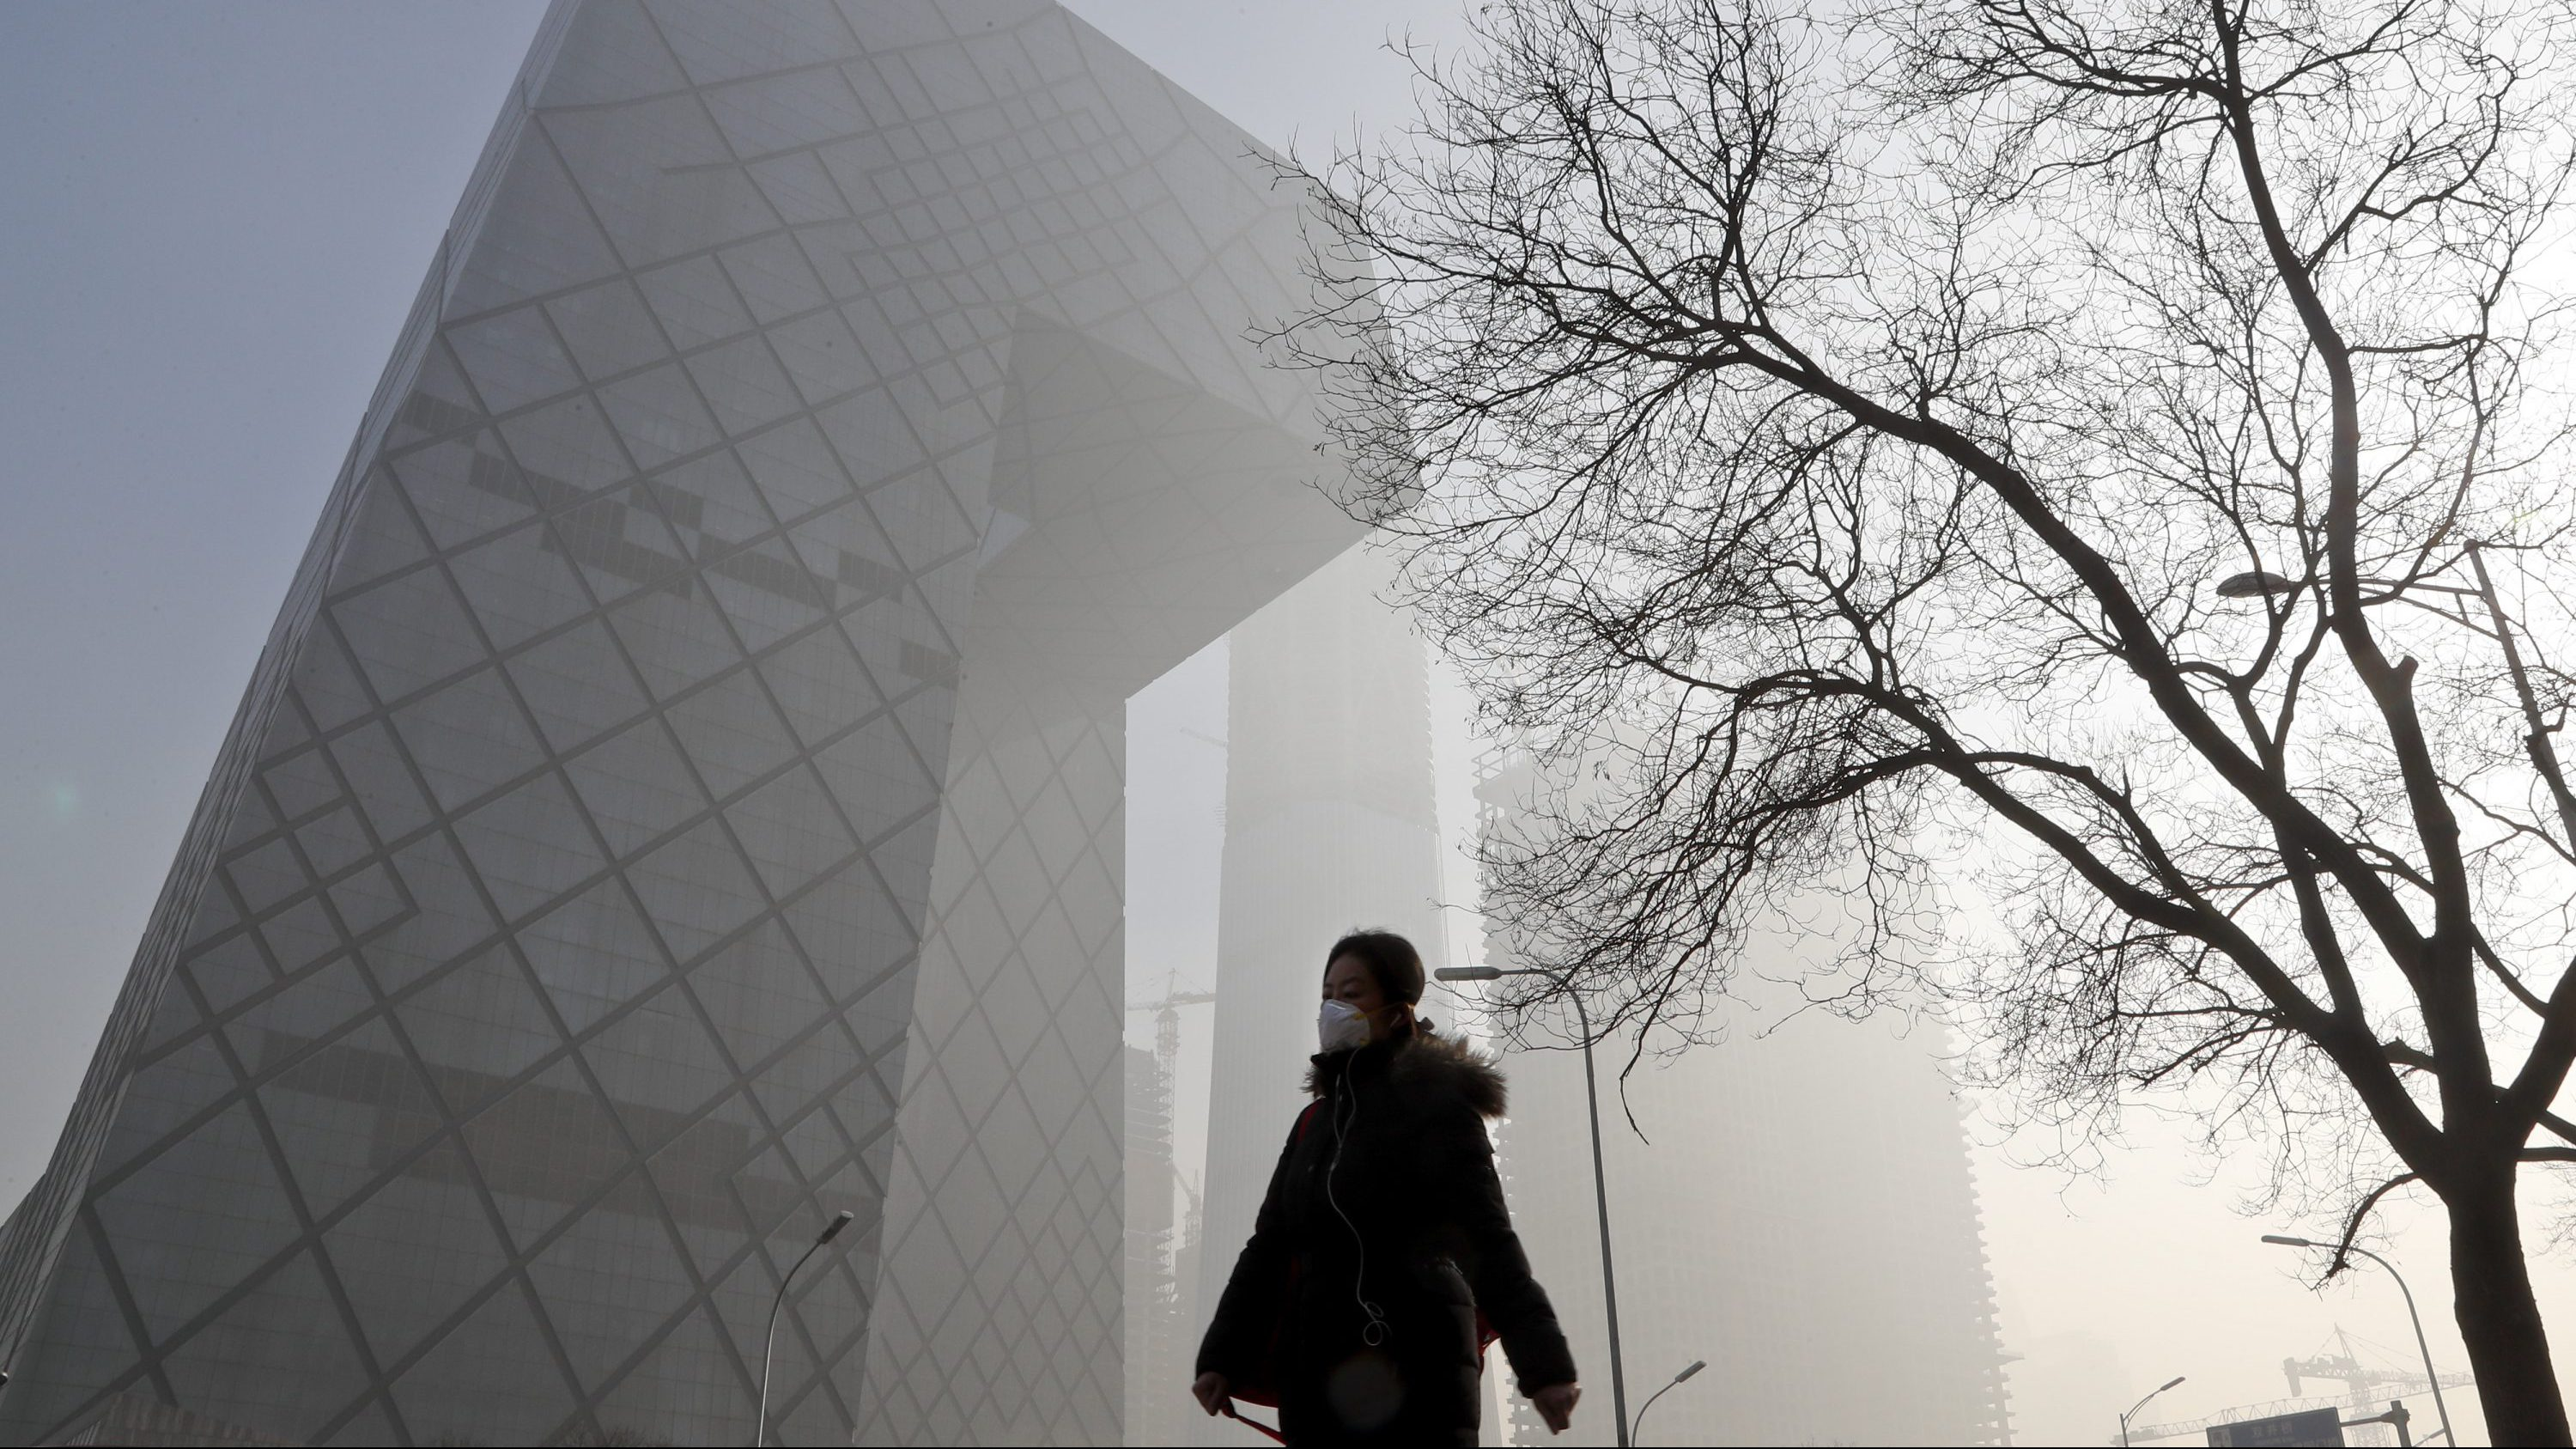 """A Chinese woman wearing a protection mask walks near the iconic headquarters of China's state broadcaster Central China Television (CCTV) at the Central Business District in Beijing as the capital of China is blanked by heavy smog Tuesday, Jan. 3, 2017. China's Ministry of Environment says an unspecified number of companies have violated measures meant to reduce smog as the country deals with a phase of particularly noxious pollution. Beijing has been on """"orange alert"""" the second highest pollution alert level since Friday. The alert was originally due to end on Sunday but authorities have extended it a further three days."""